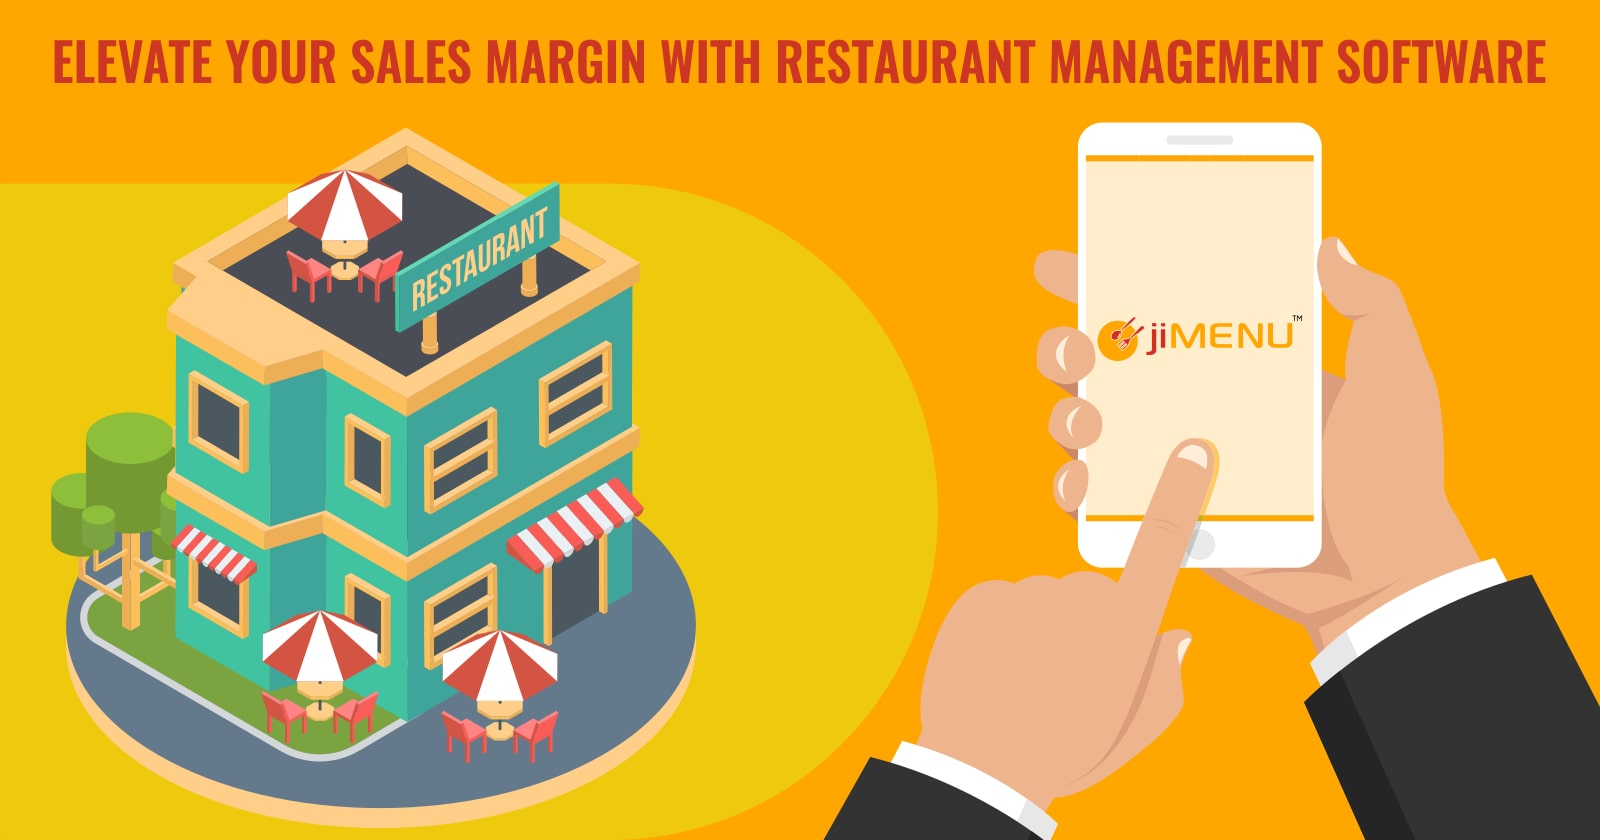 Elevate Your Sales Margin With Restaurant Management Software!